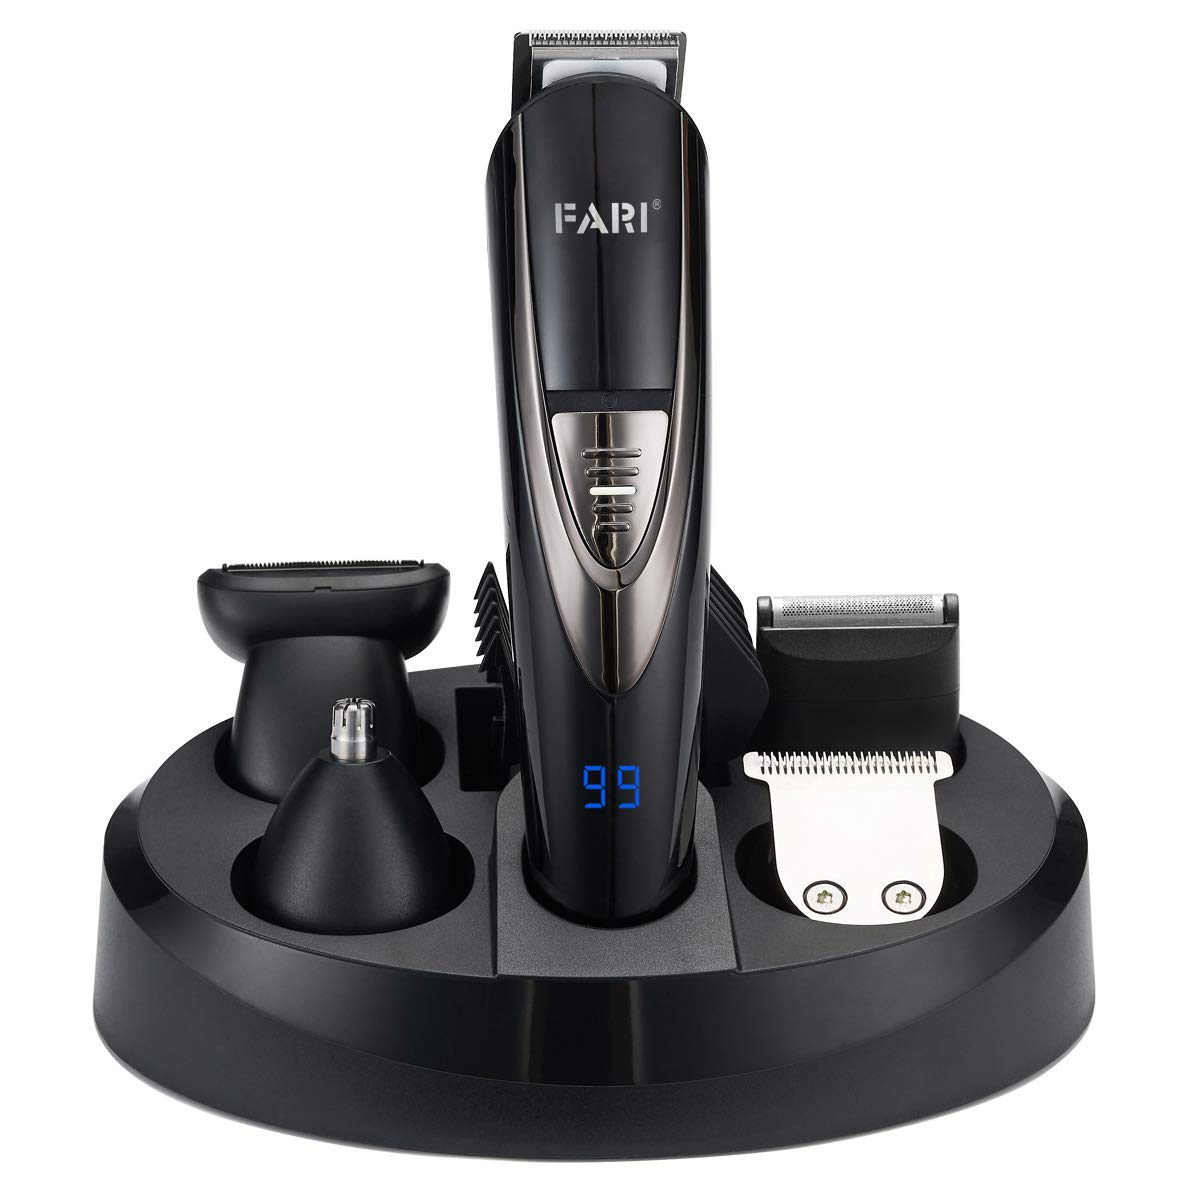 FARI Multifunctional Electric Beard Trimmer Set, Fully Washable Men's Grooming Kit, Professional Cordless Hair Clipper for Men and Mustache Nose Trimmers Shaver Suit (Black & Silver)